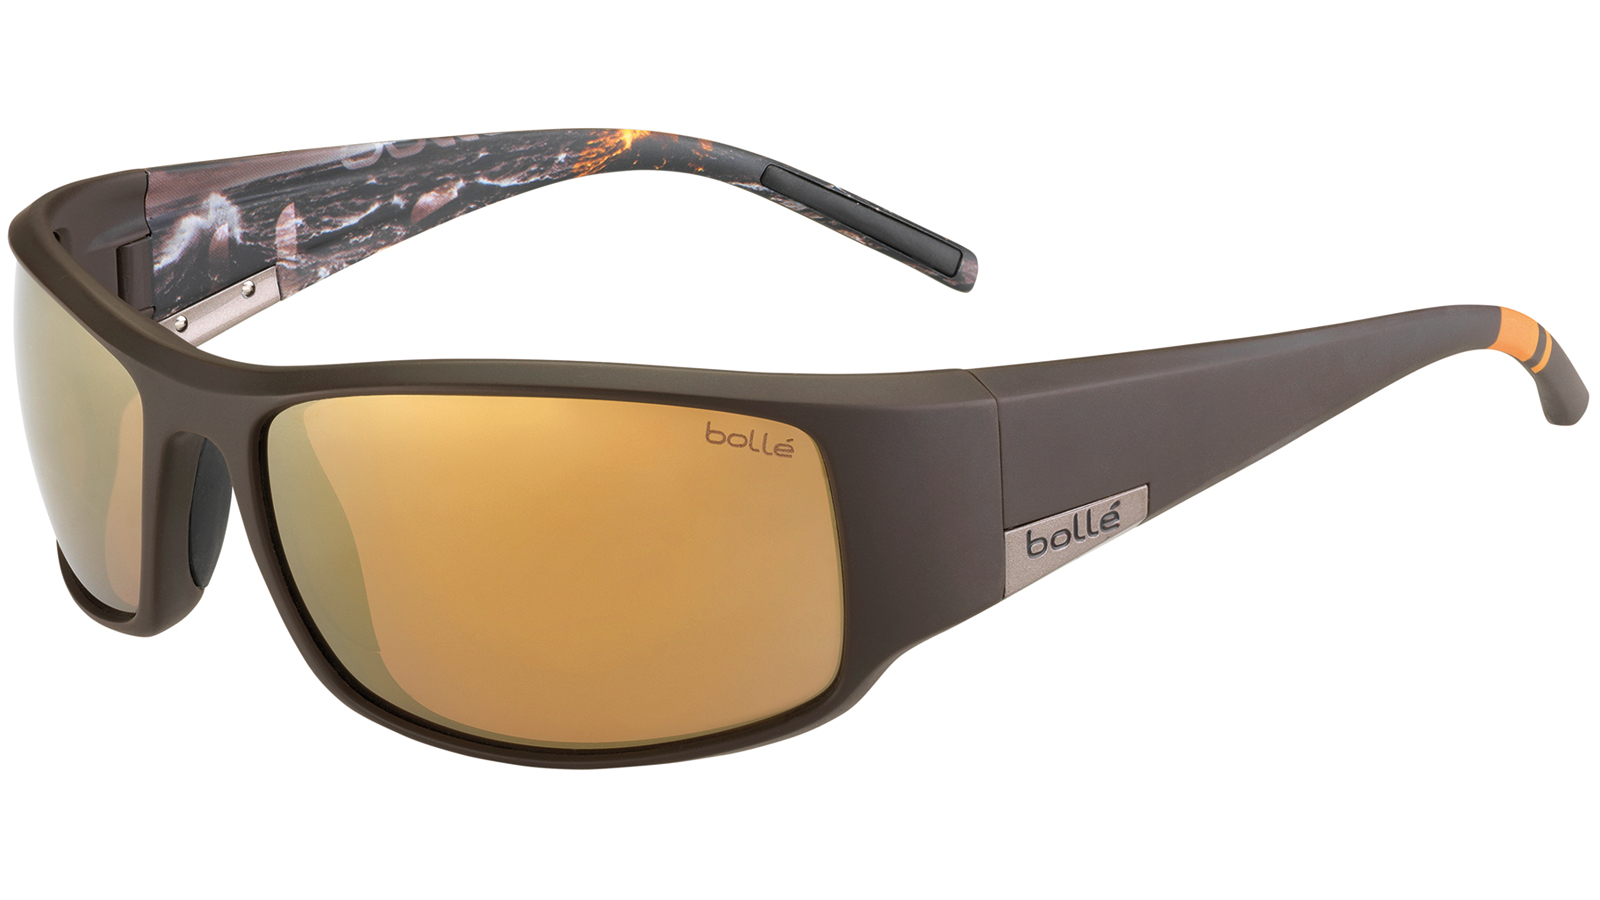 Bolle 12120 King Shooting|Sporting Glasses Brown